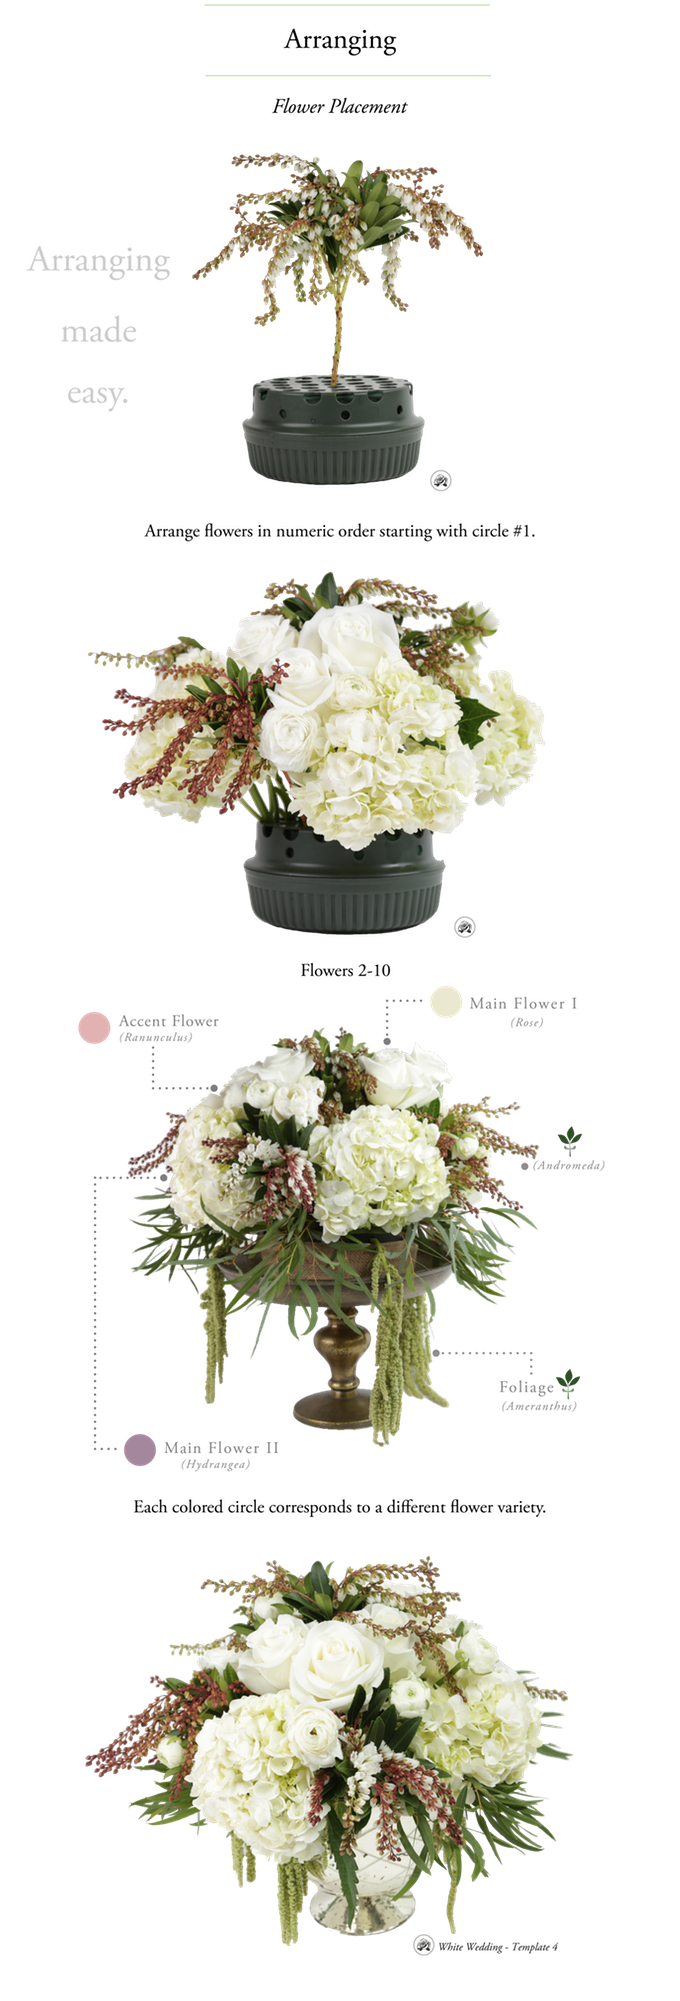 A Reusable, Do-It-Yourself Flower Arranging Kit with Step-by-Step ...